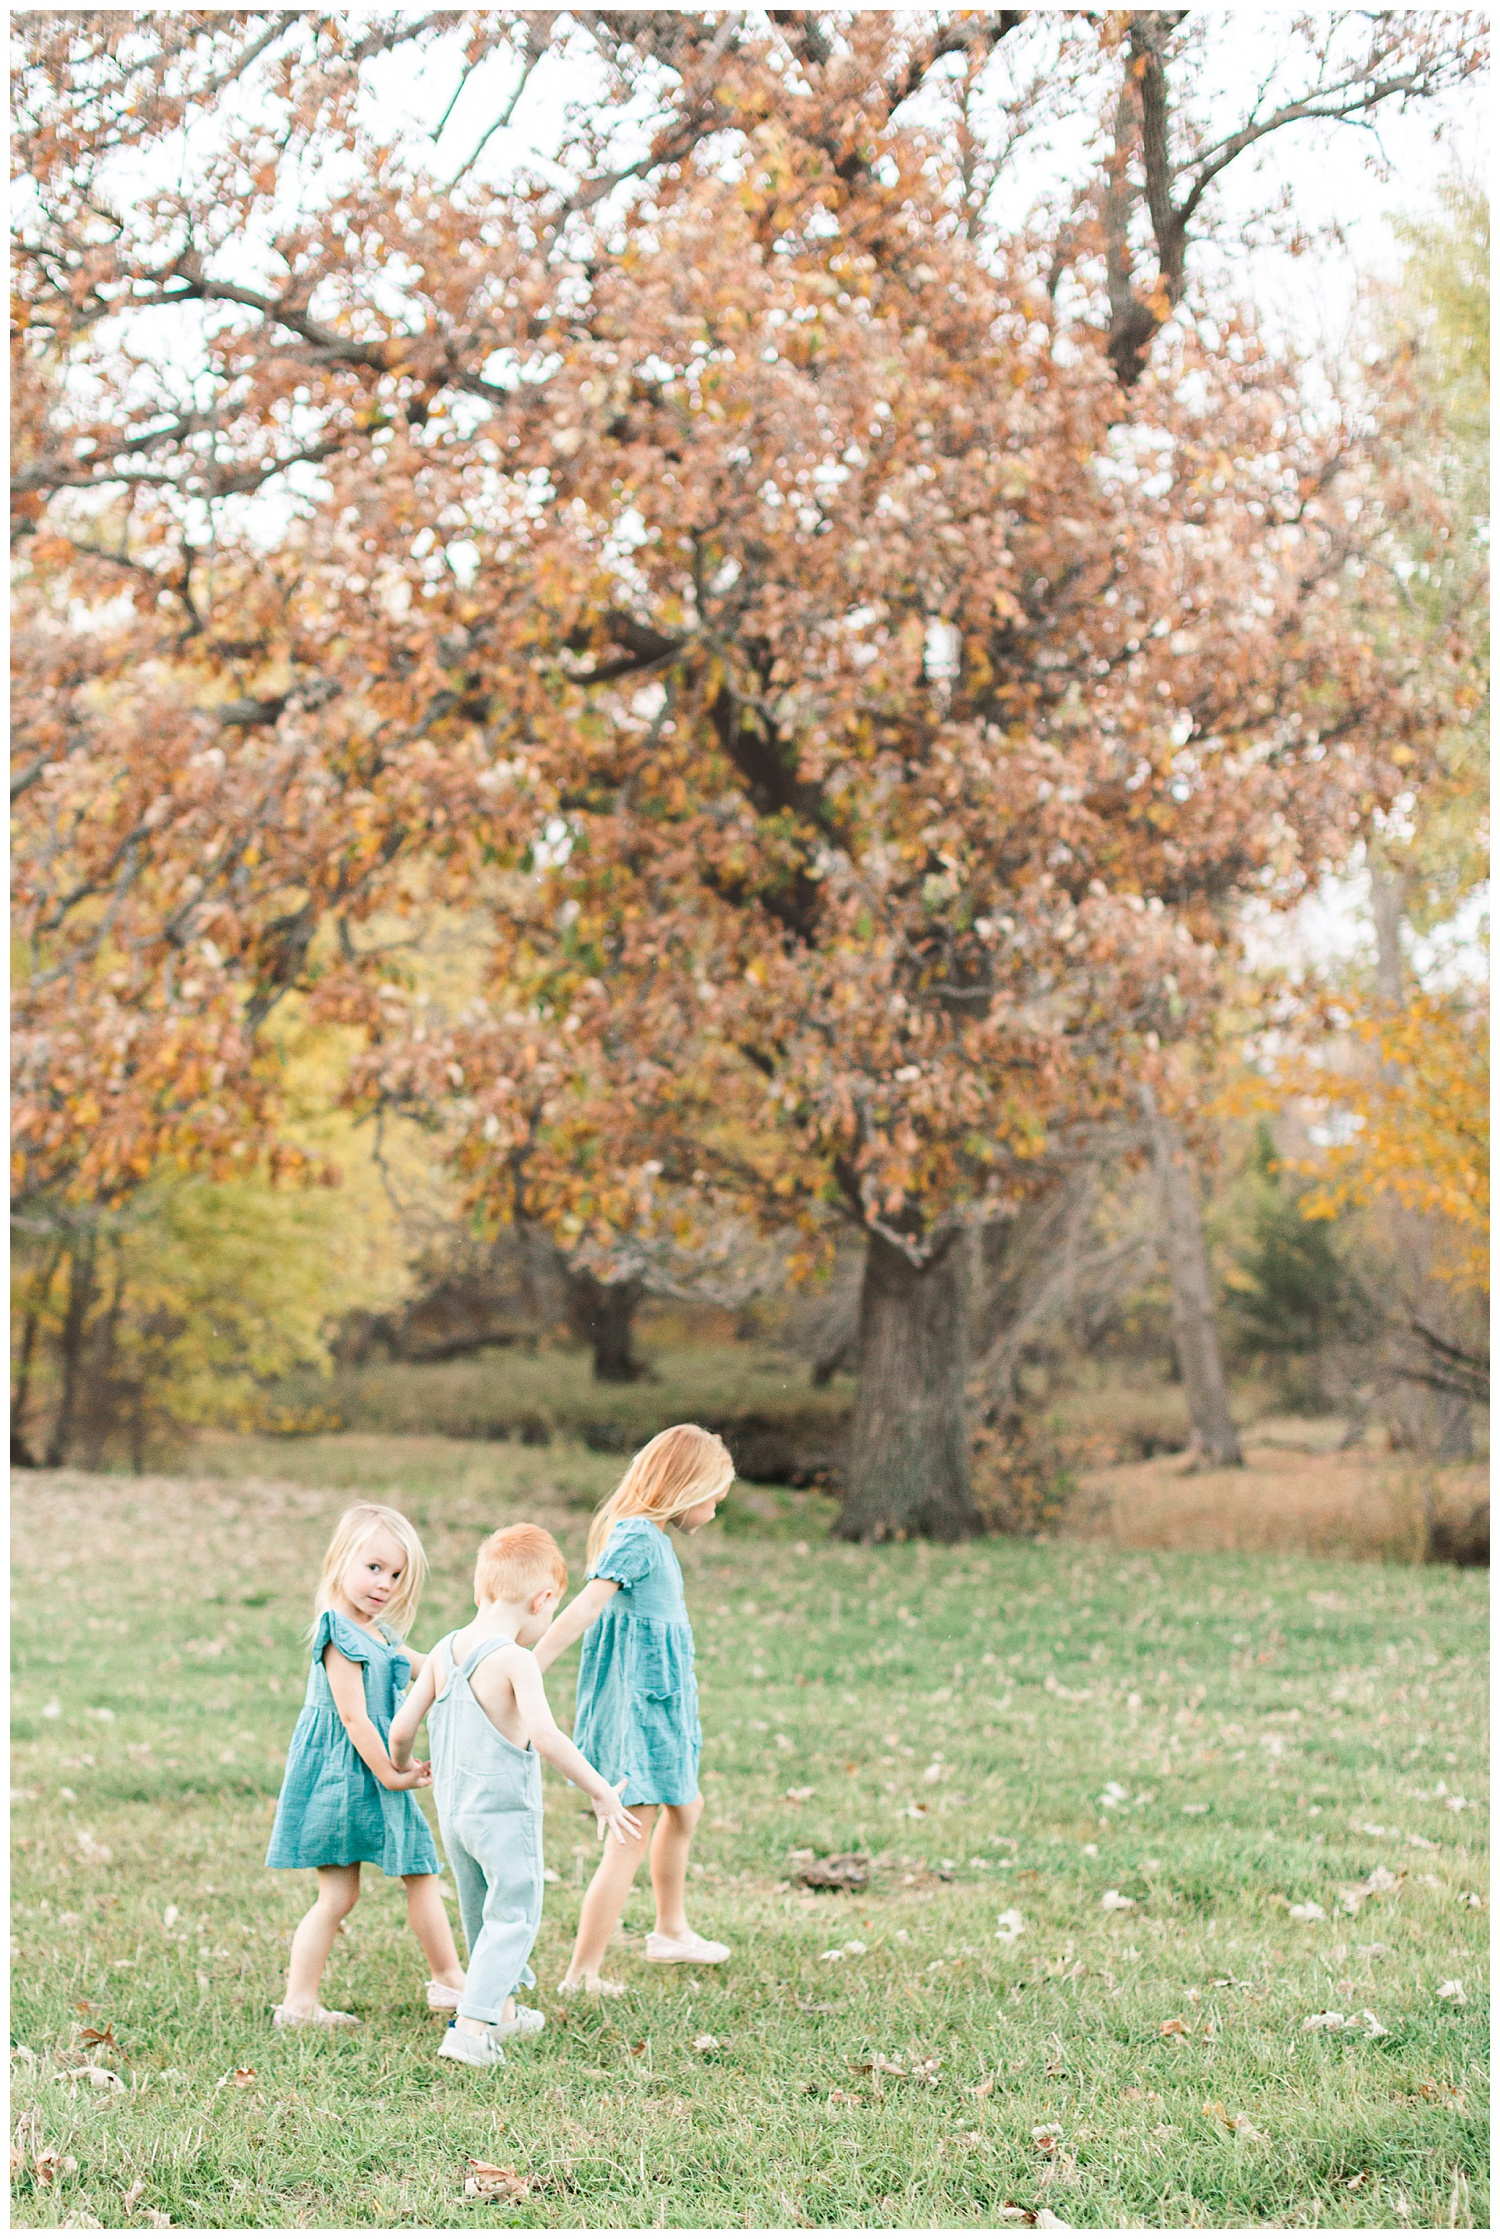 Three children dressed in vintage teal walk holding hands in a grassy pasture | CB Studio